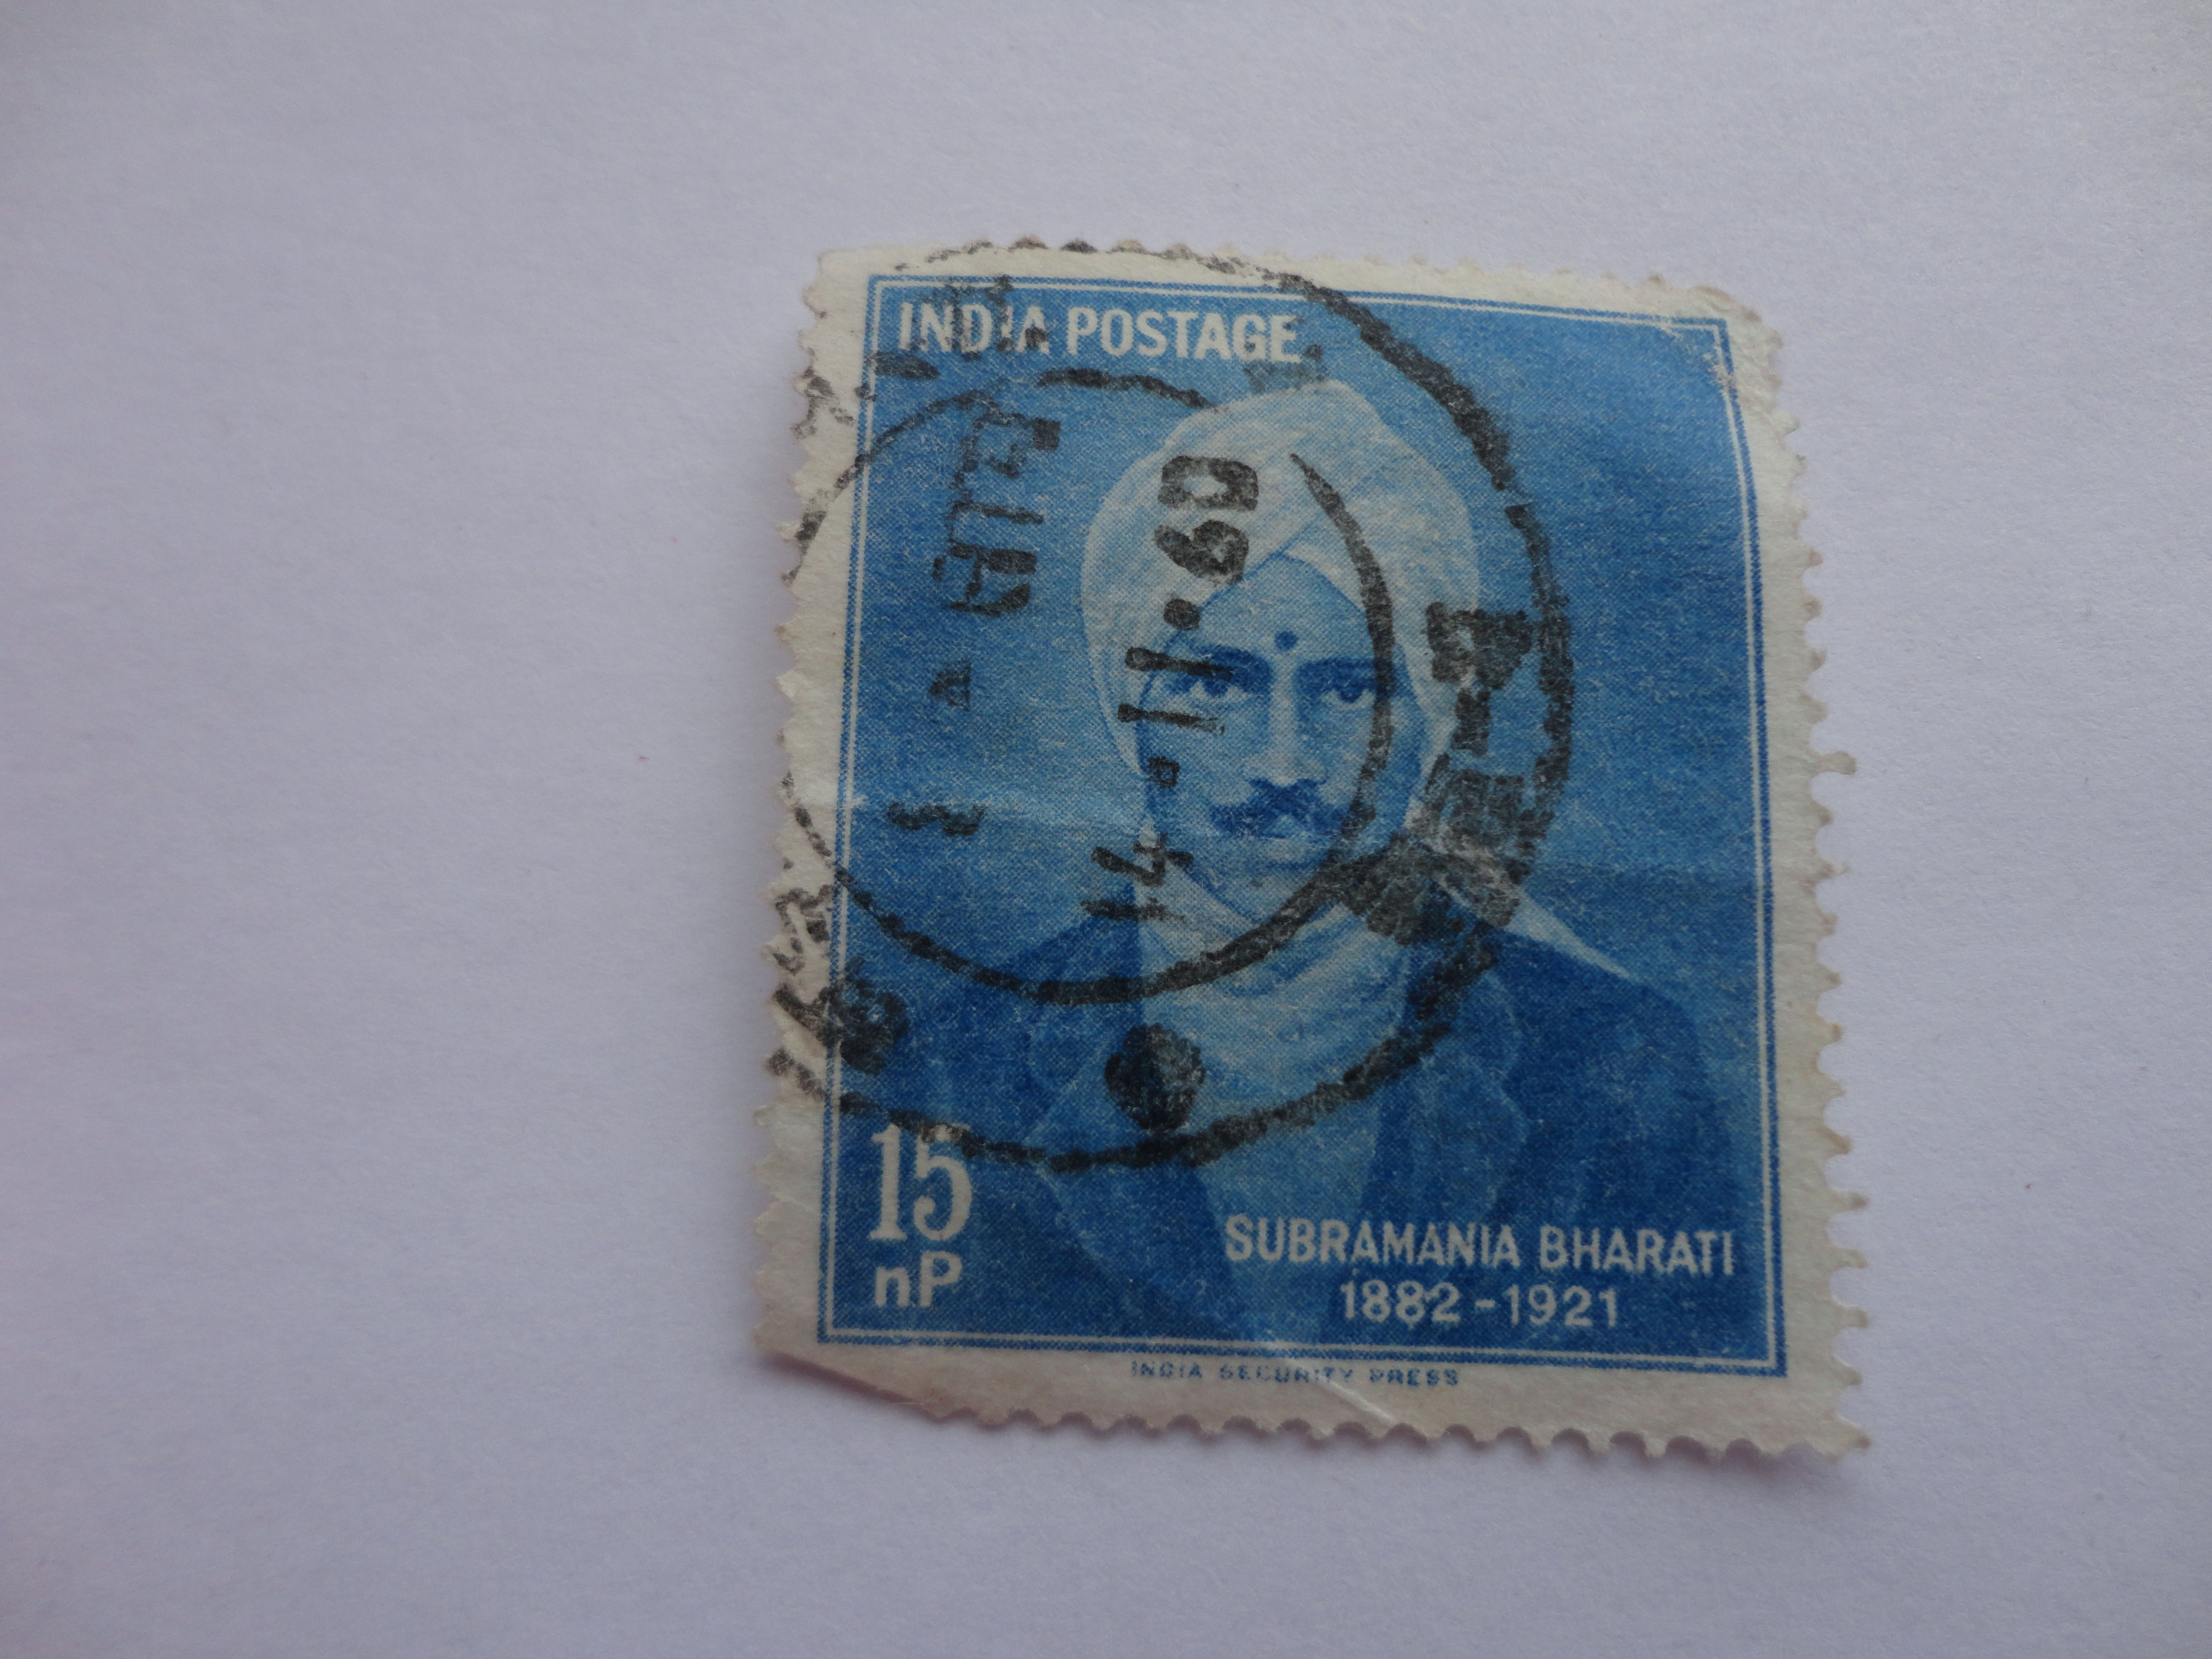 15nP 1882-1921 India Interesting and Rare Postage Stamp